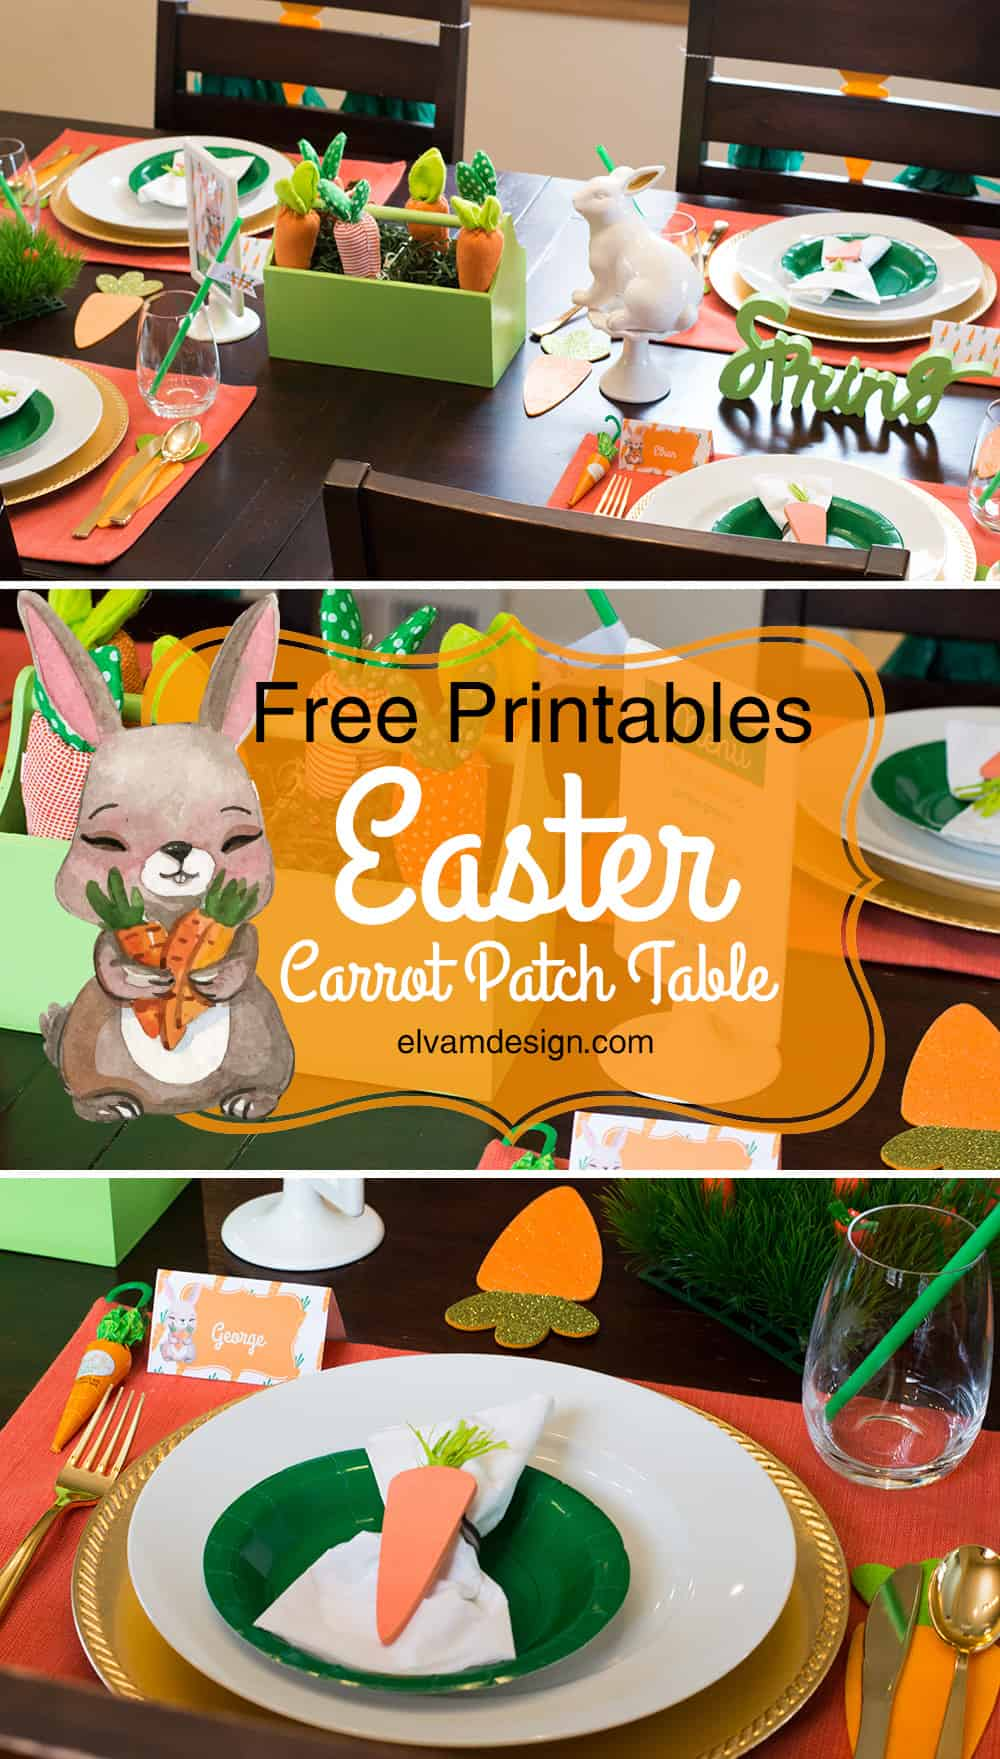 Free Printables Carrot Patch Easter Table